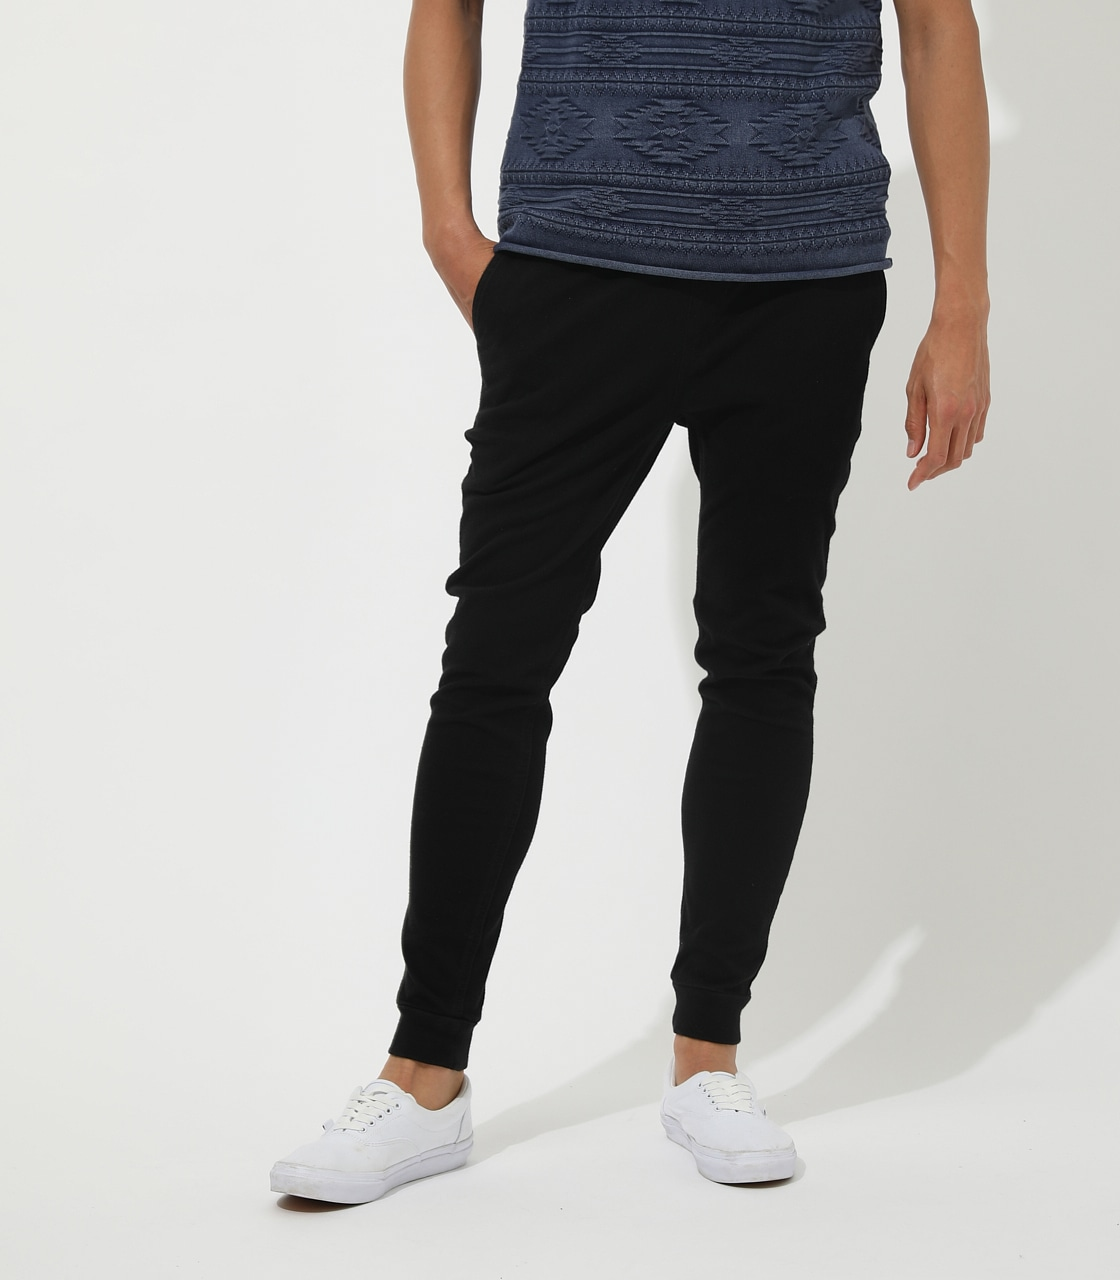 【AZUL BY MOUSSY】EASY ACTION SLIM JOGGER 詳細画像 BLK 1